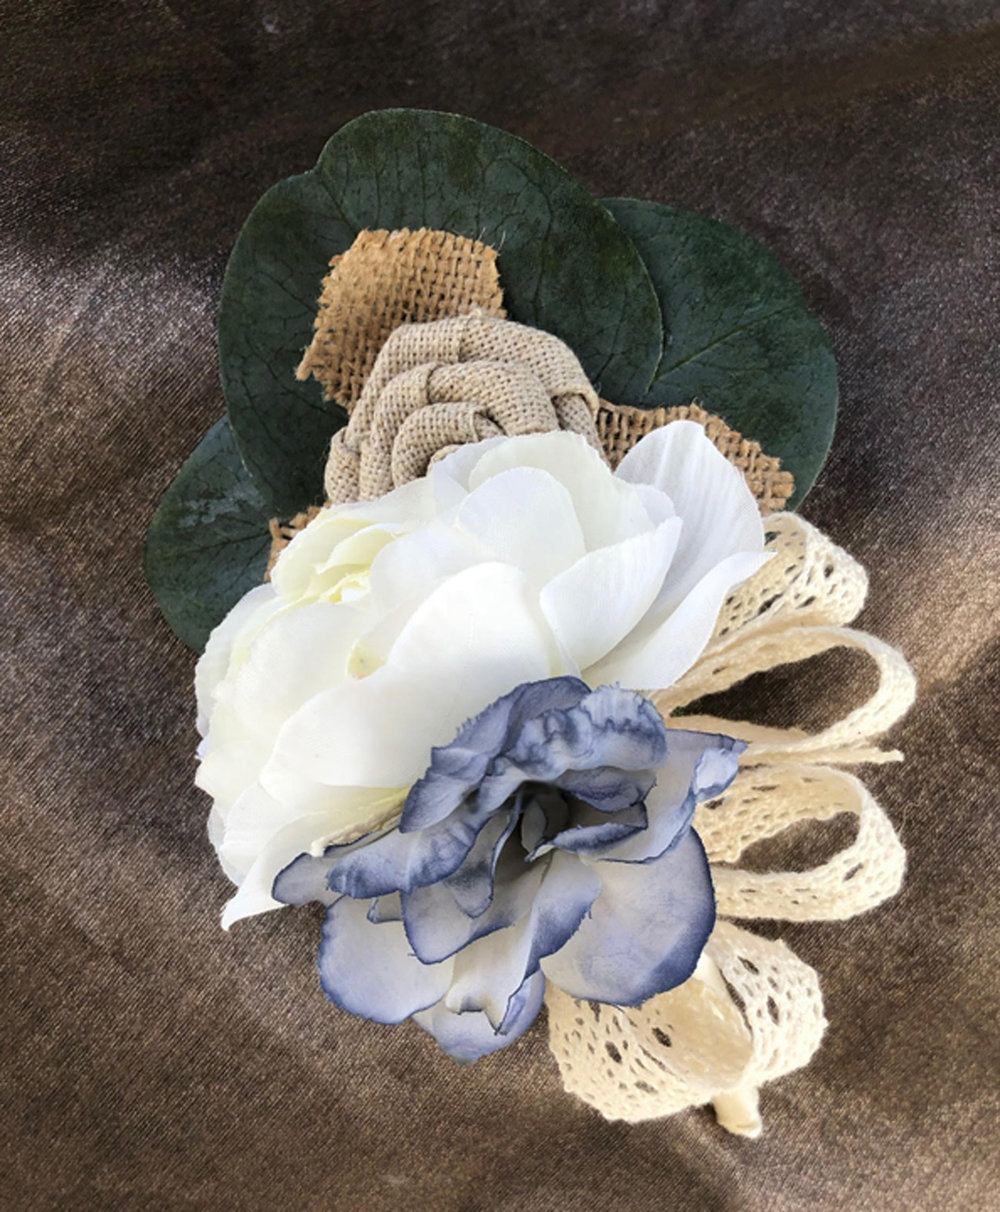 mother pin-on corsage - silk flowers (hand-dyed), burlap flowers with cotton lace bow